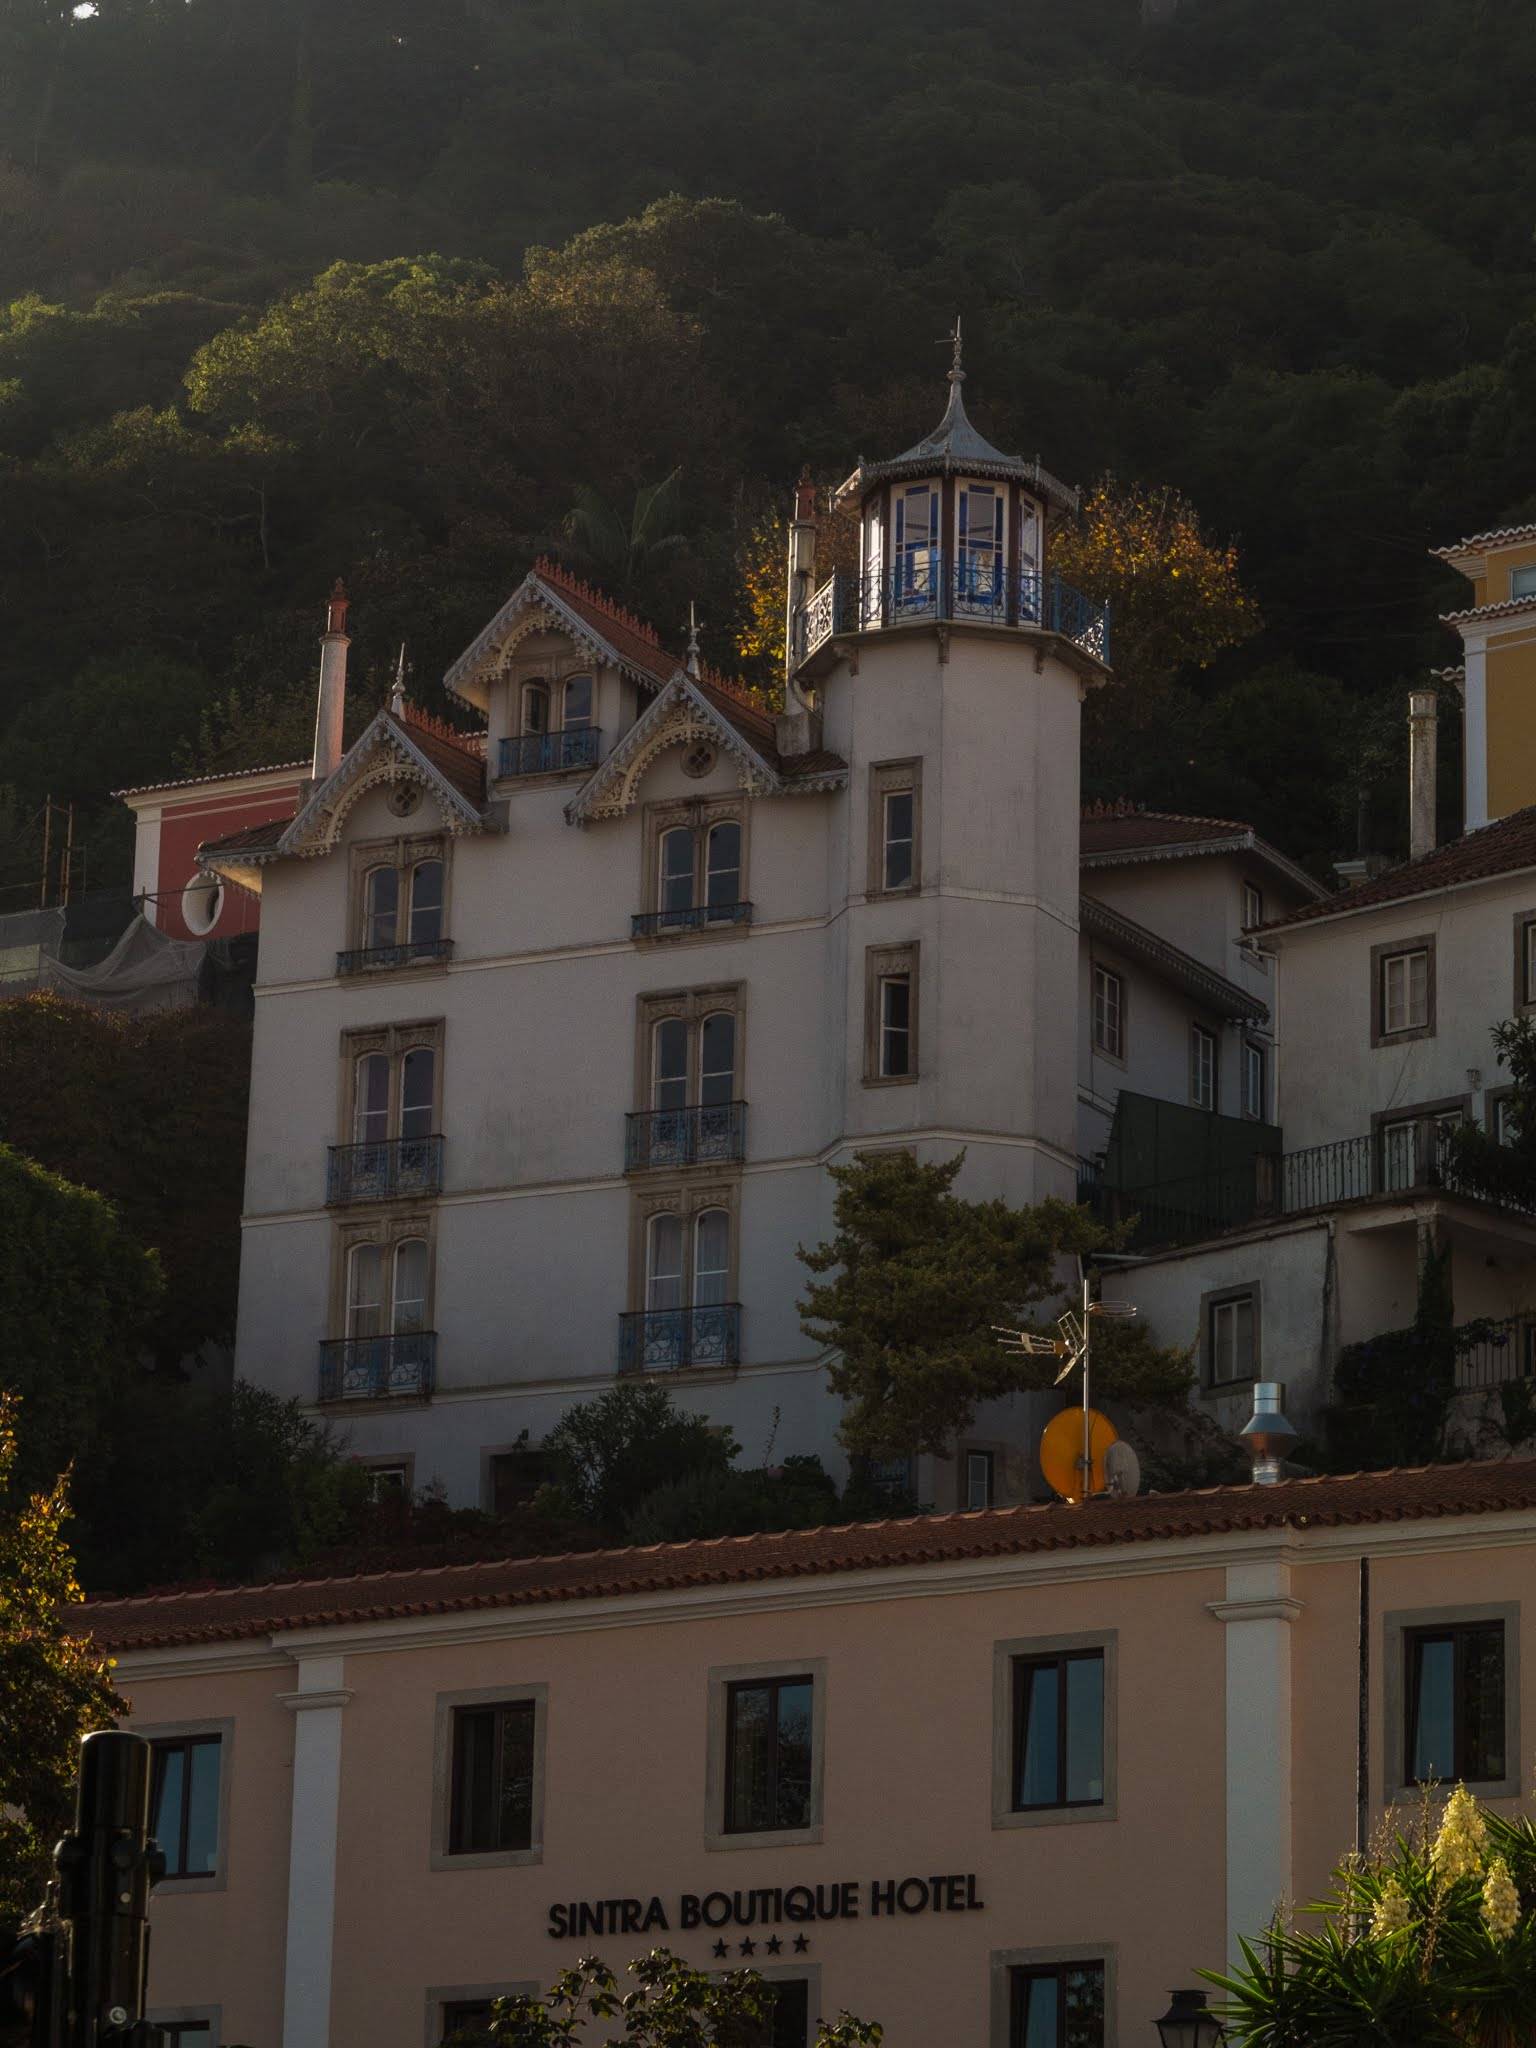 View of the hillside Sintra Boutique Hotel nestled into the trees.